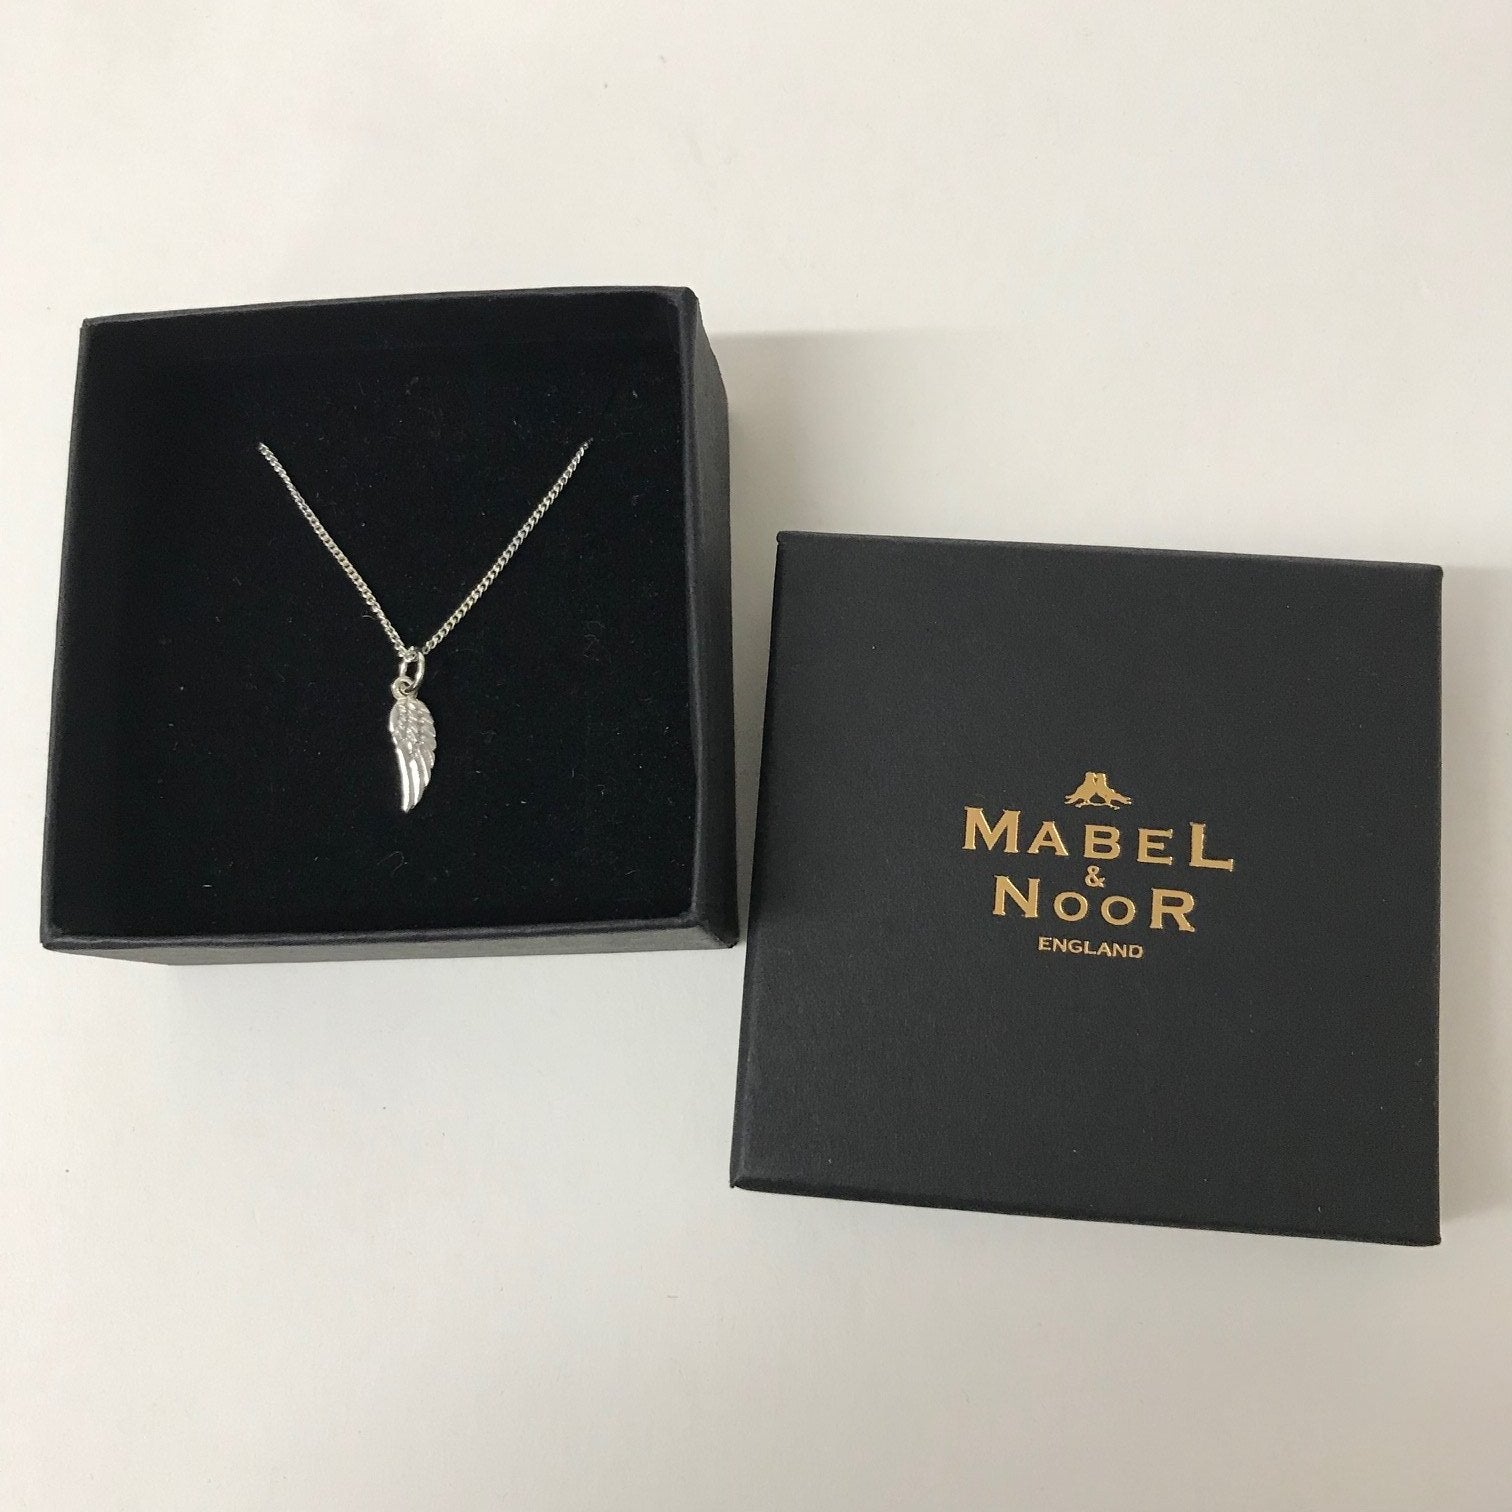 Mabel & Noor Silver Jewellery - Silver Wishwing Necklace